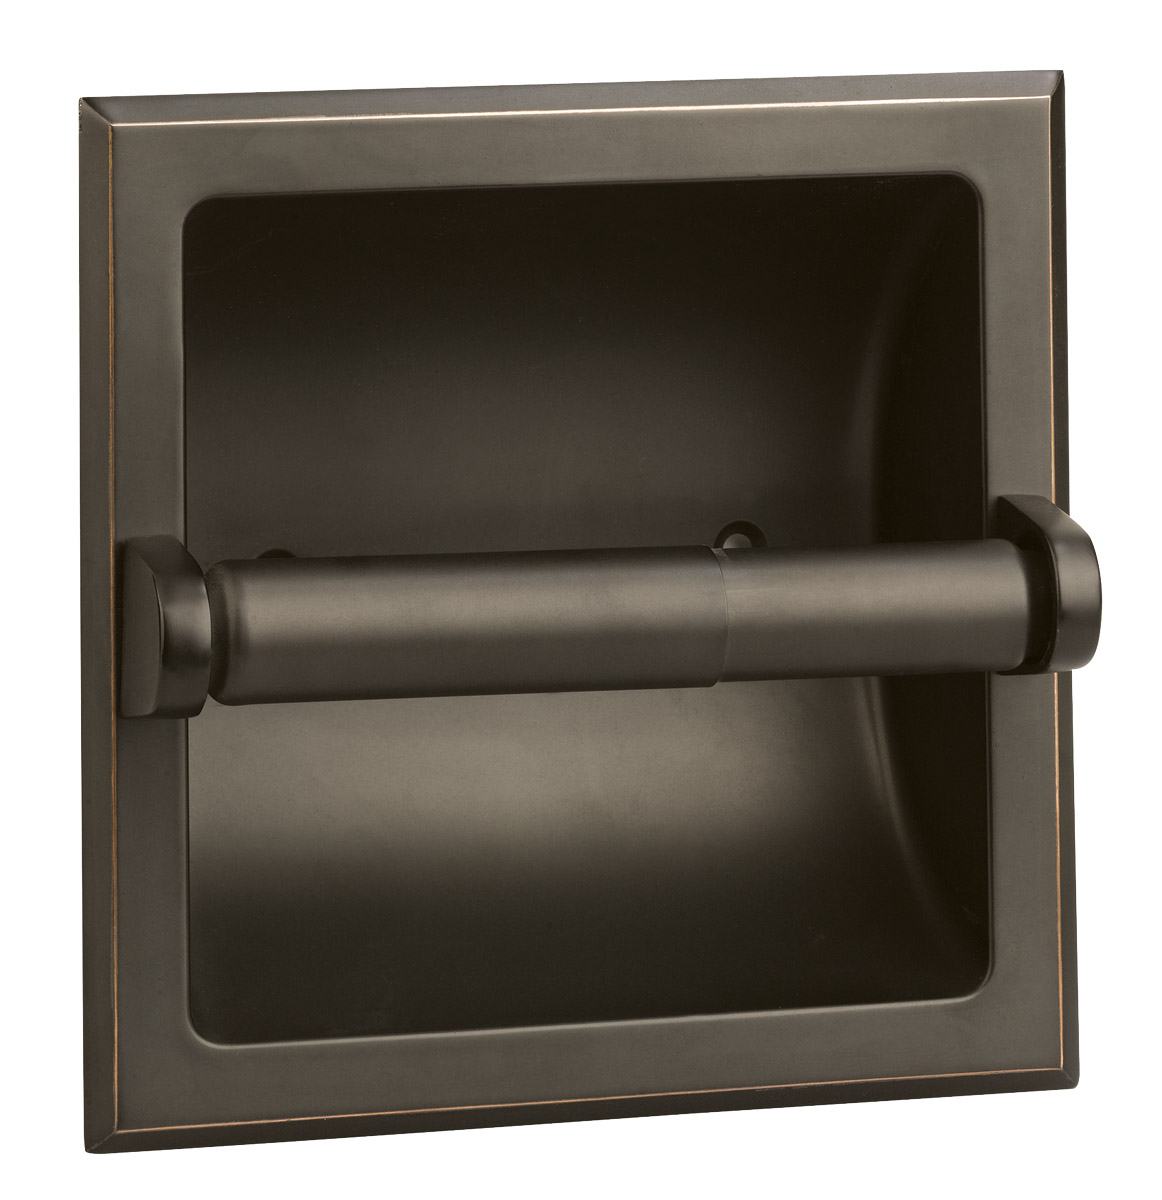 Paper Towel Holder Kmart Oil Rubbed Bronze Finish Bathroom Accessories Kmart